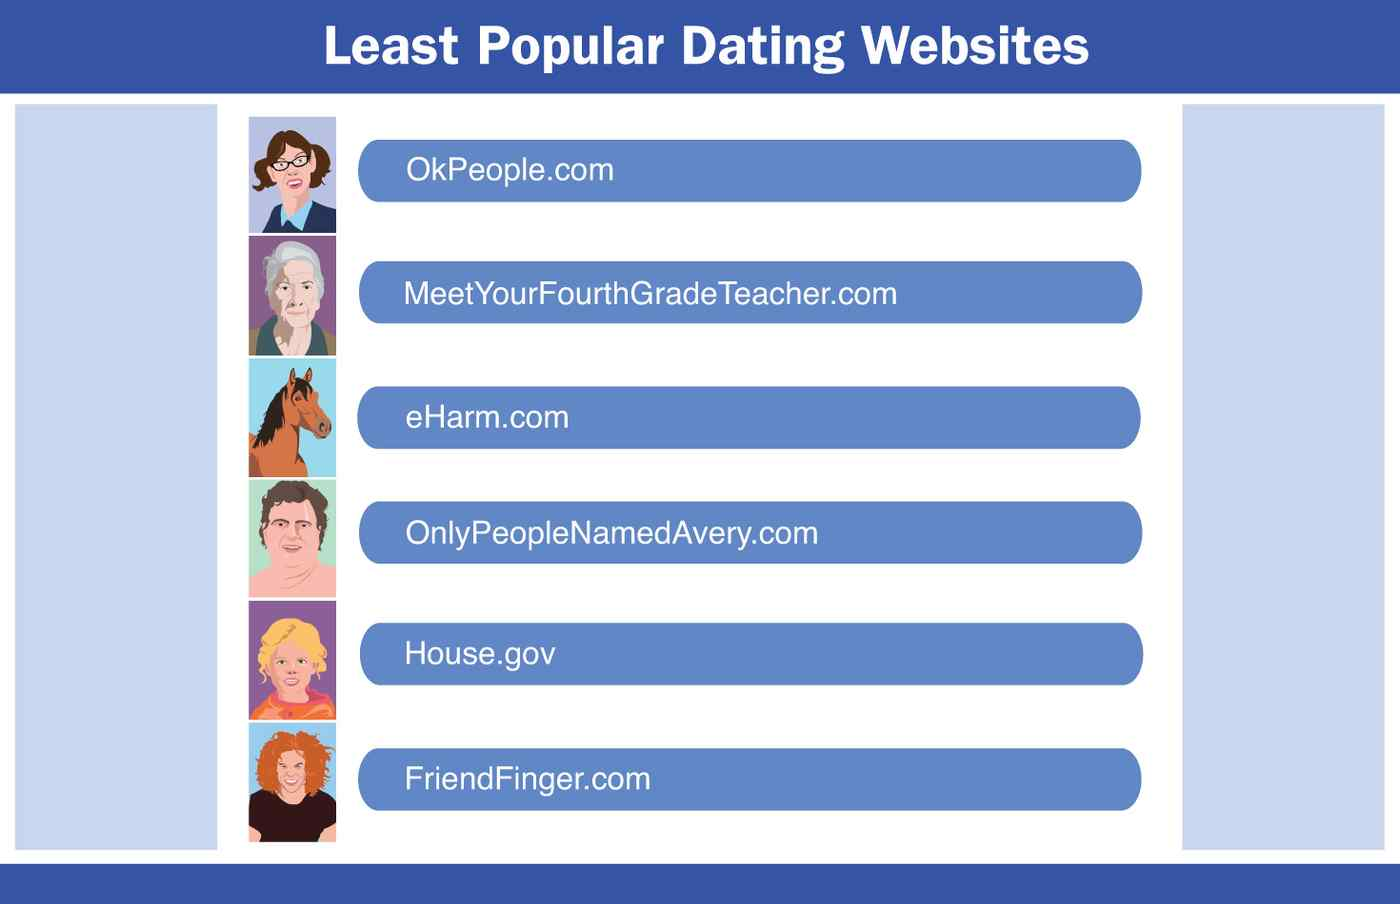 What are popular dating sites